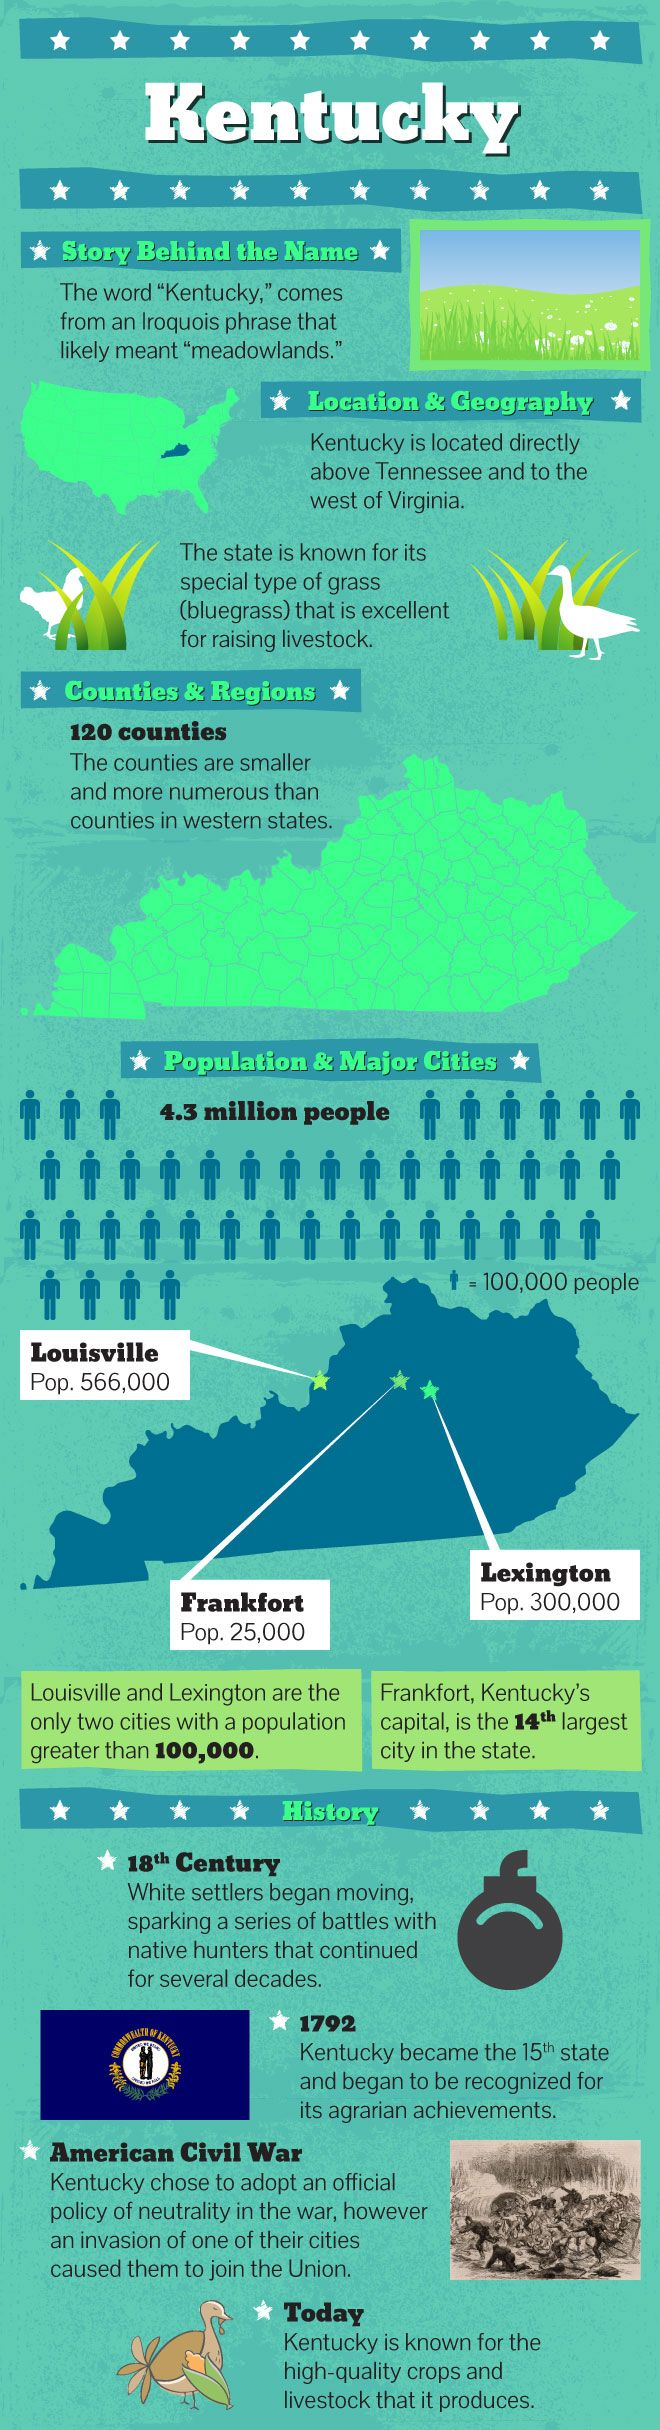 Infographic of Kentucky Facts